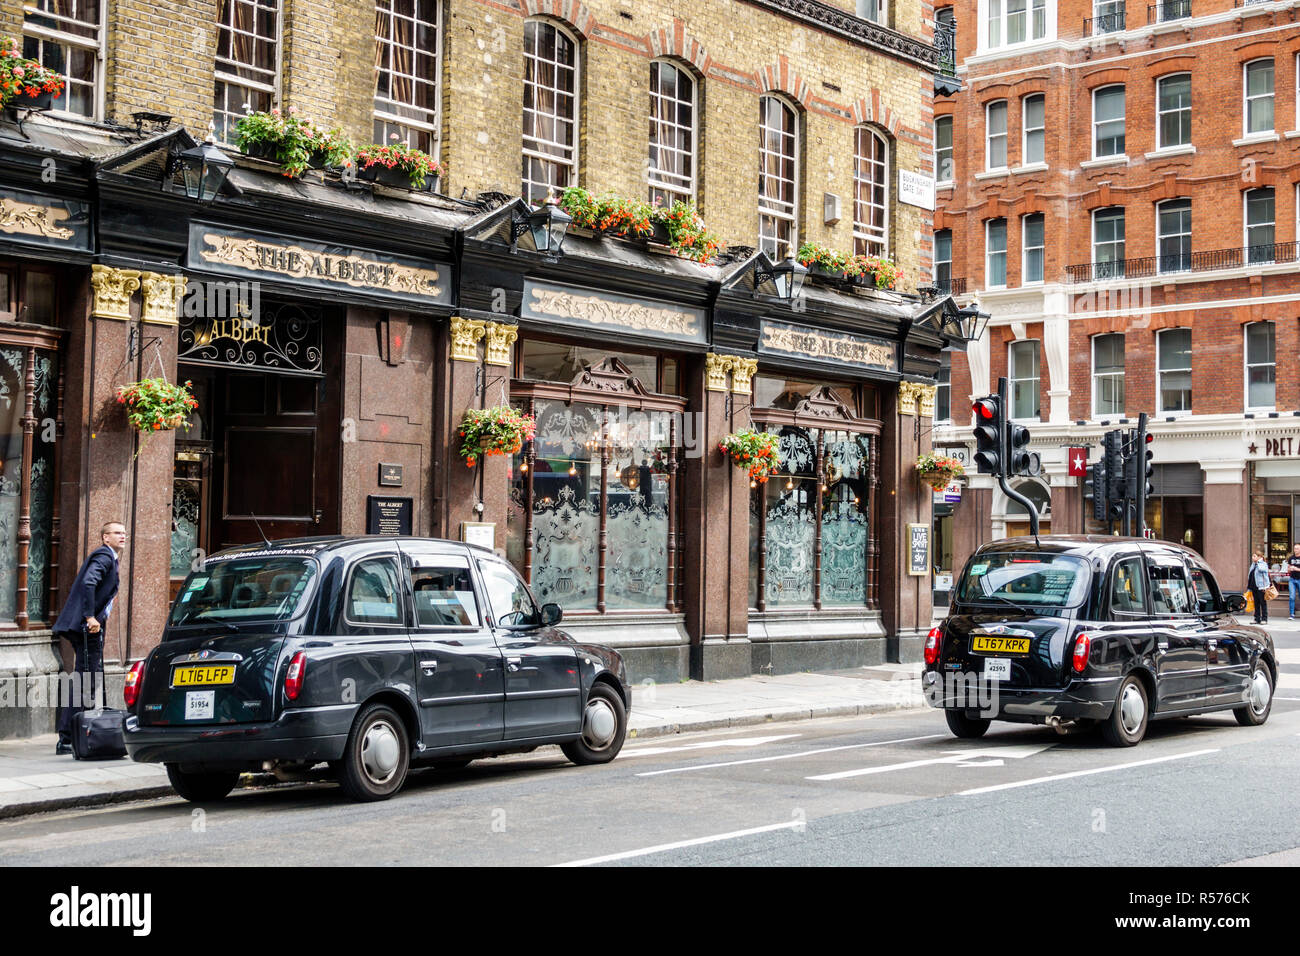 United Kingdom Great Britain England London Westminster Victoria Street The Albert Pub Victorian public house building exterior black taxicab taxi hac - Stock Image